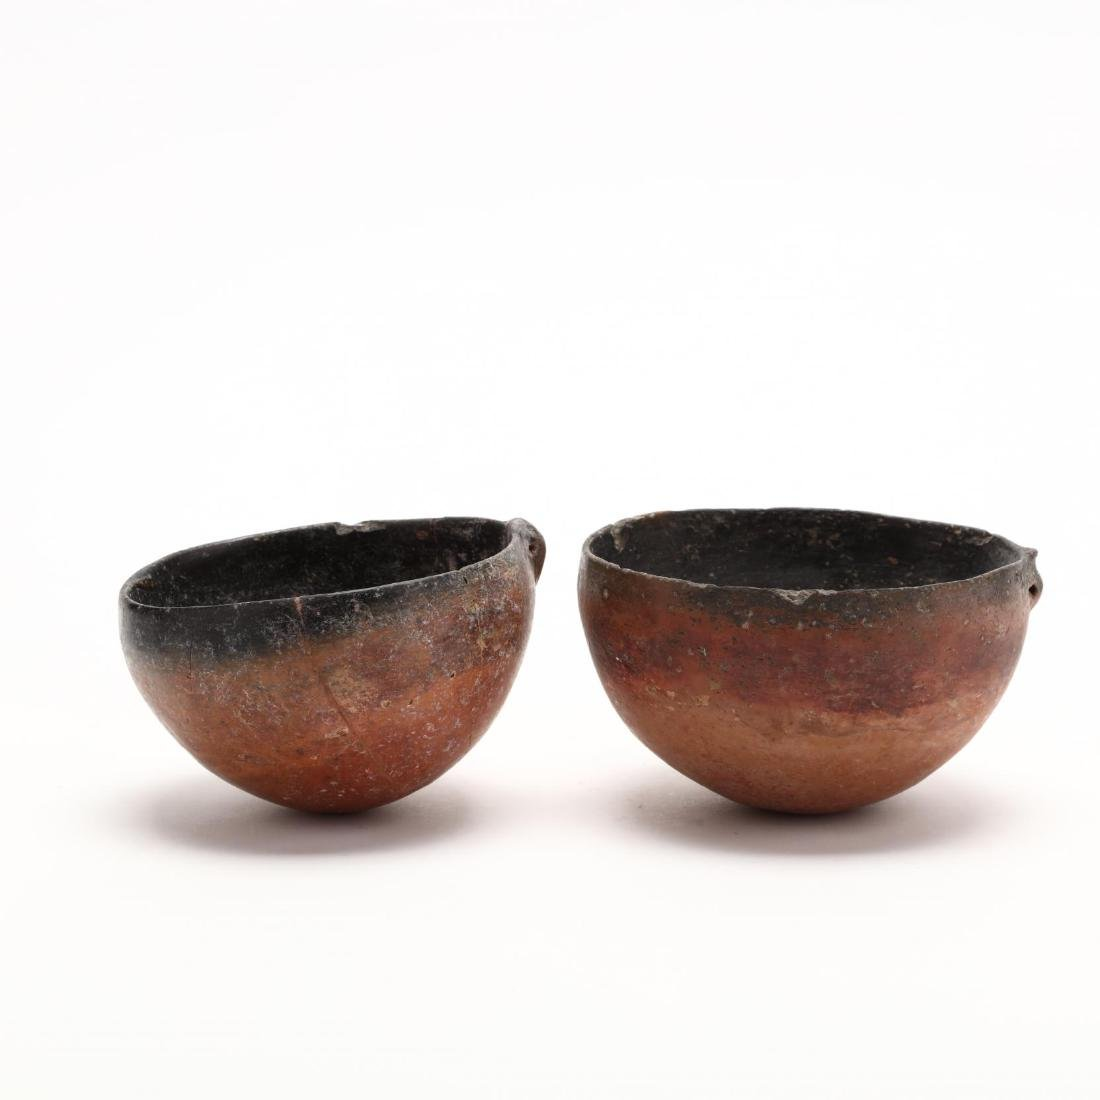 Two Cypriot Bronze Age Polished Red Ware Bowls - 4